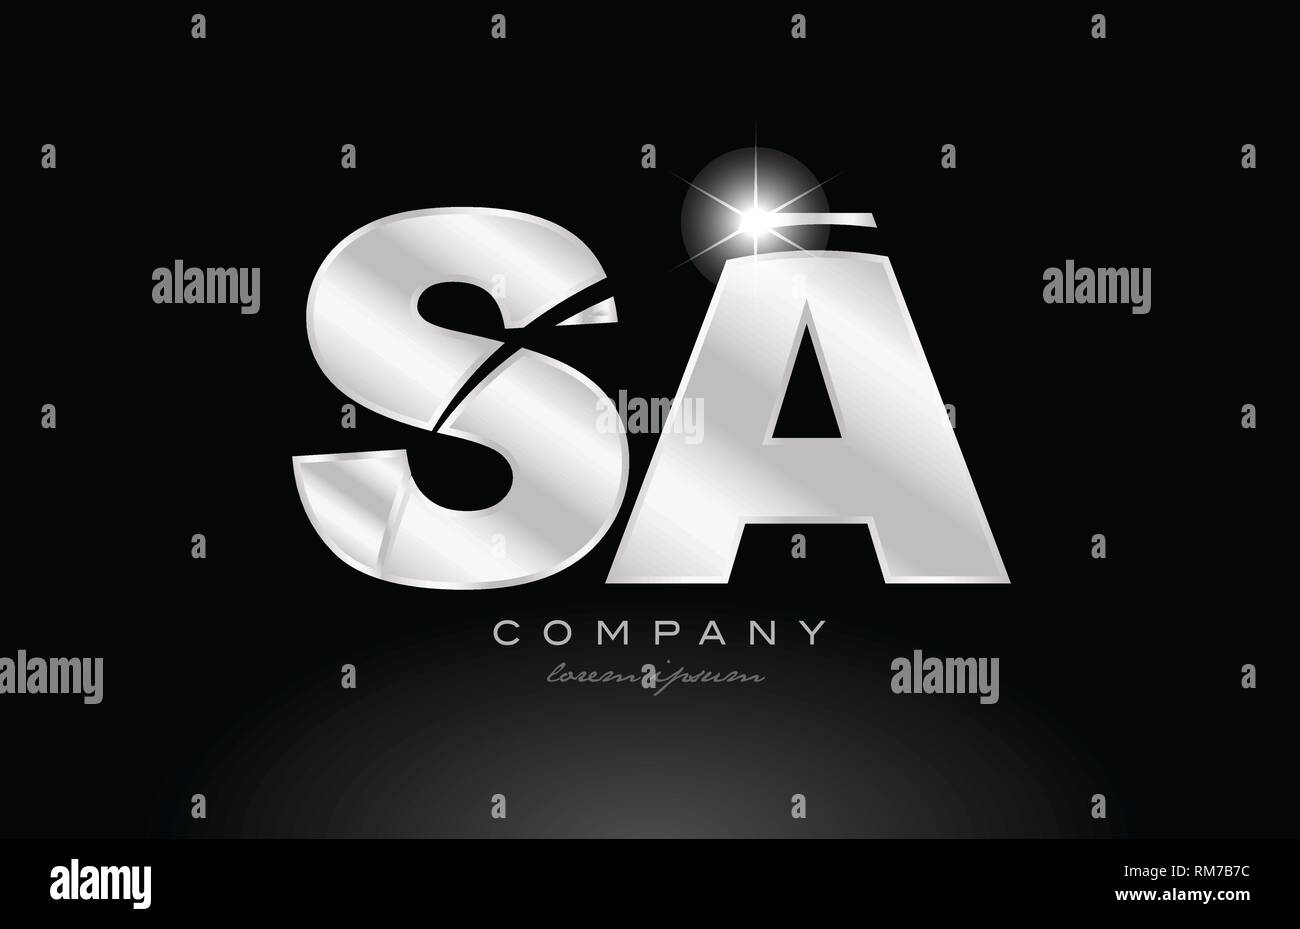 silver letter sa s a metal combination alphabet logo icon design with grey color on black background suitable for a company or business - Stock Vector